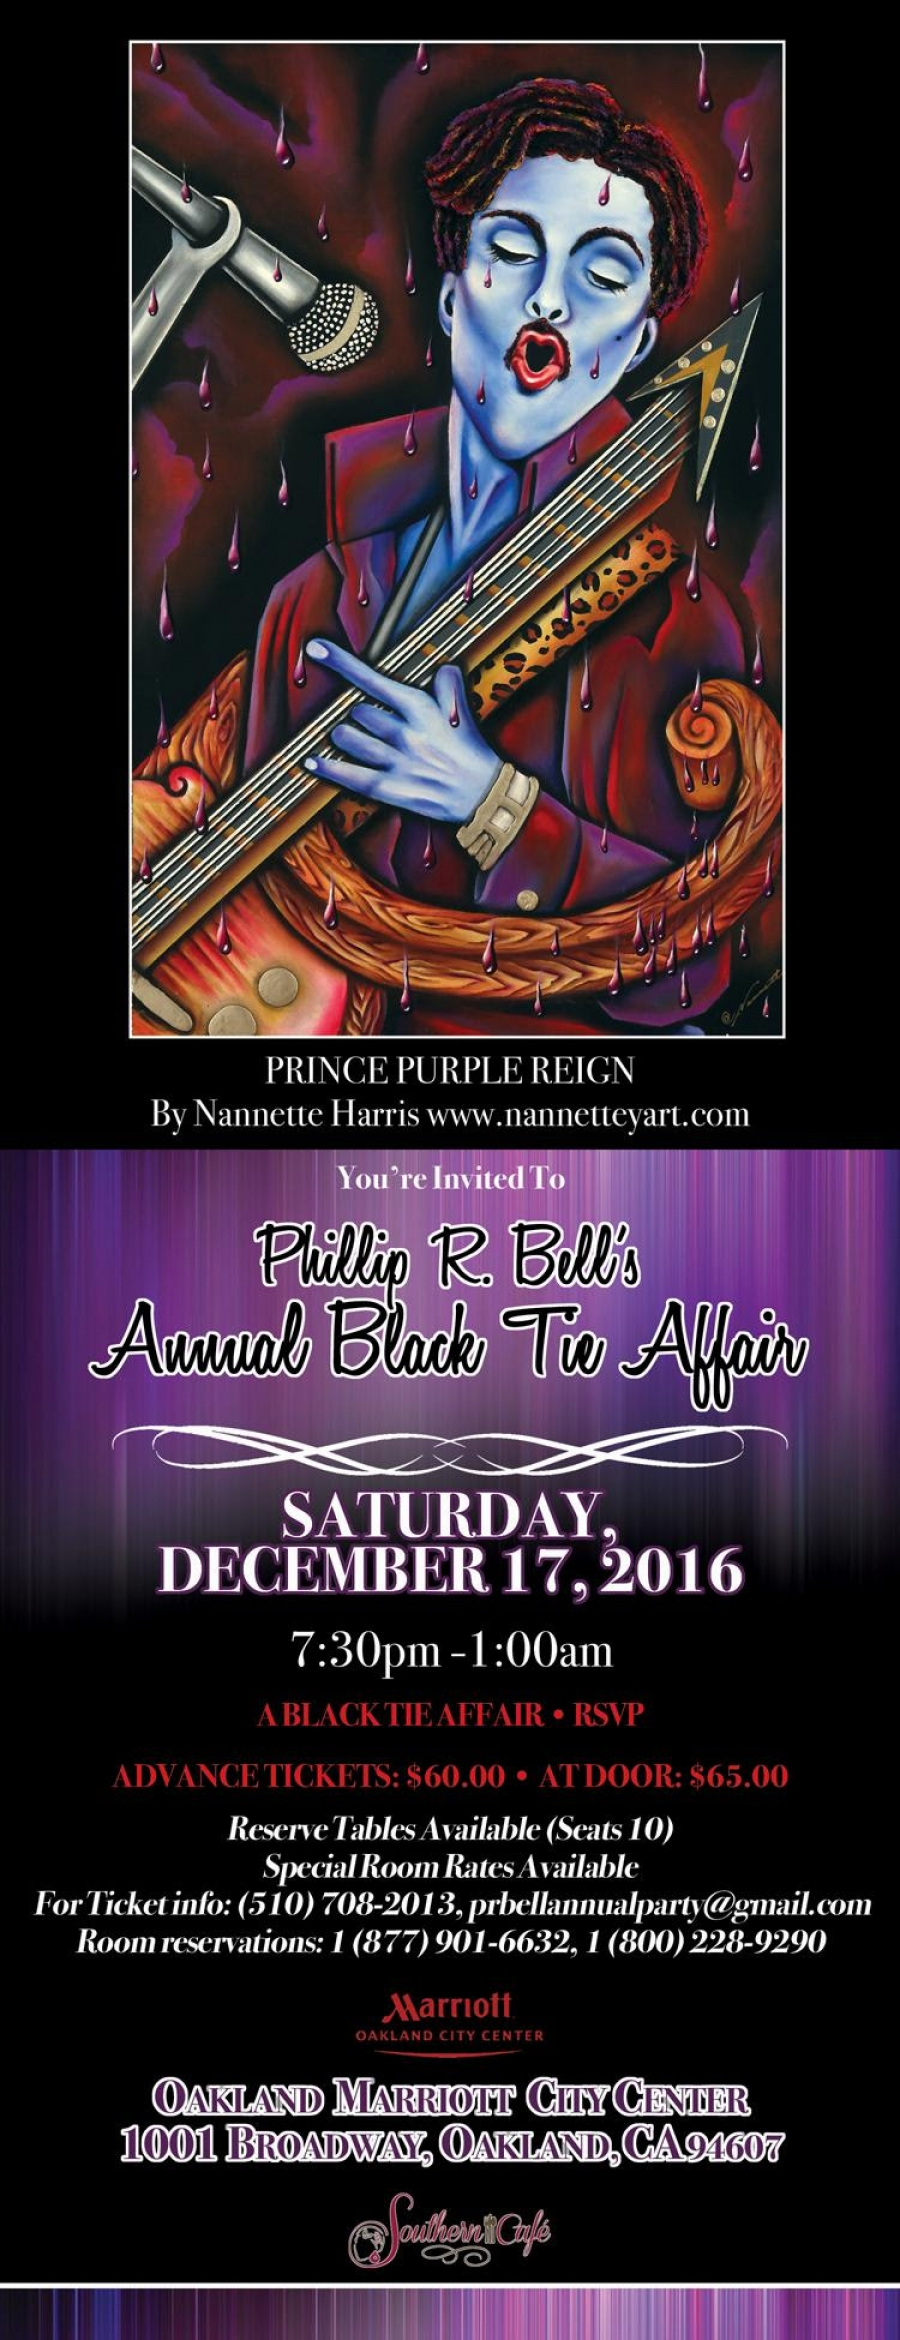 Phillip R. Bell's Annual Black Tie Affair